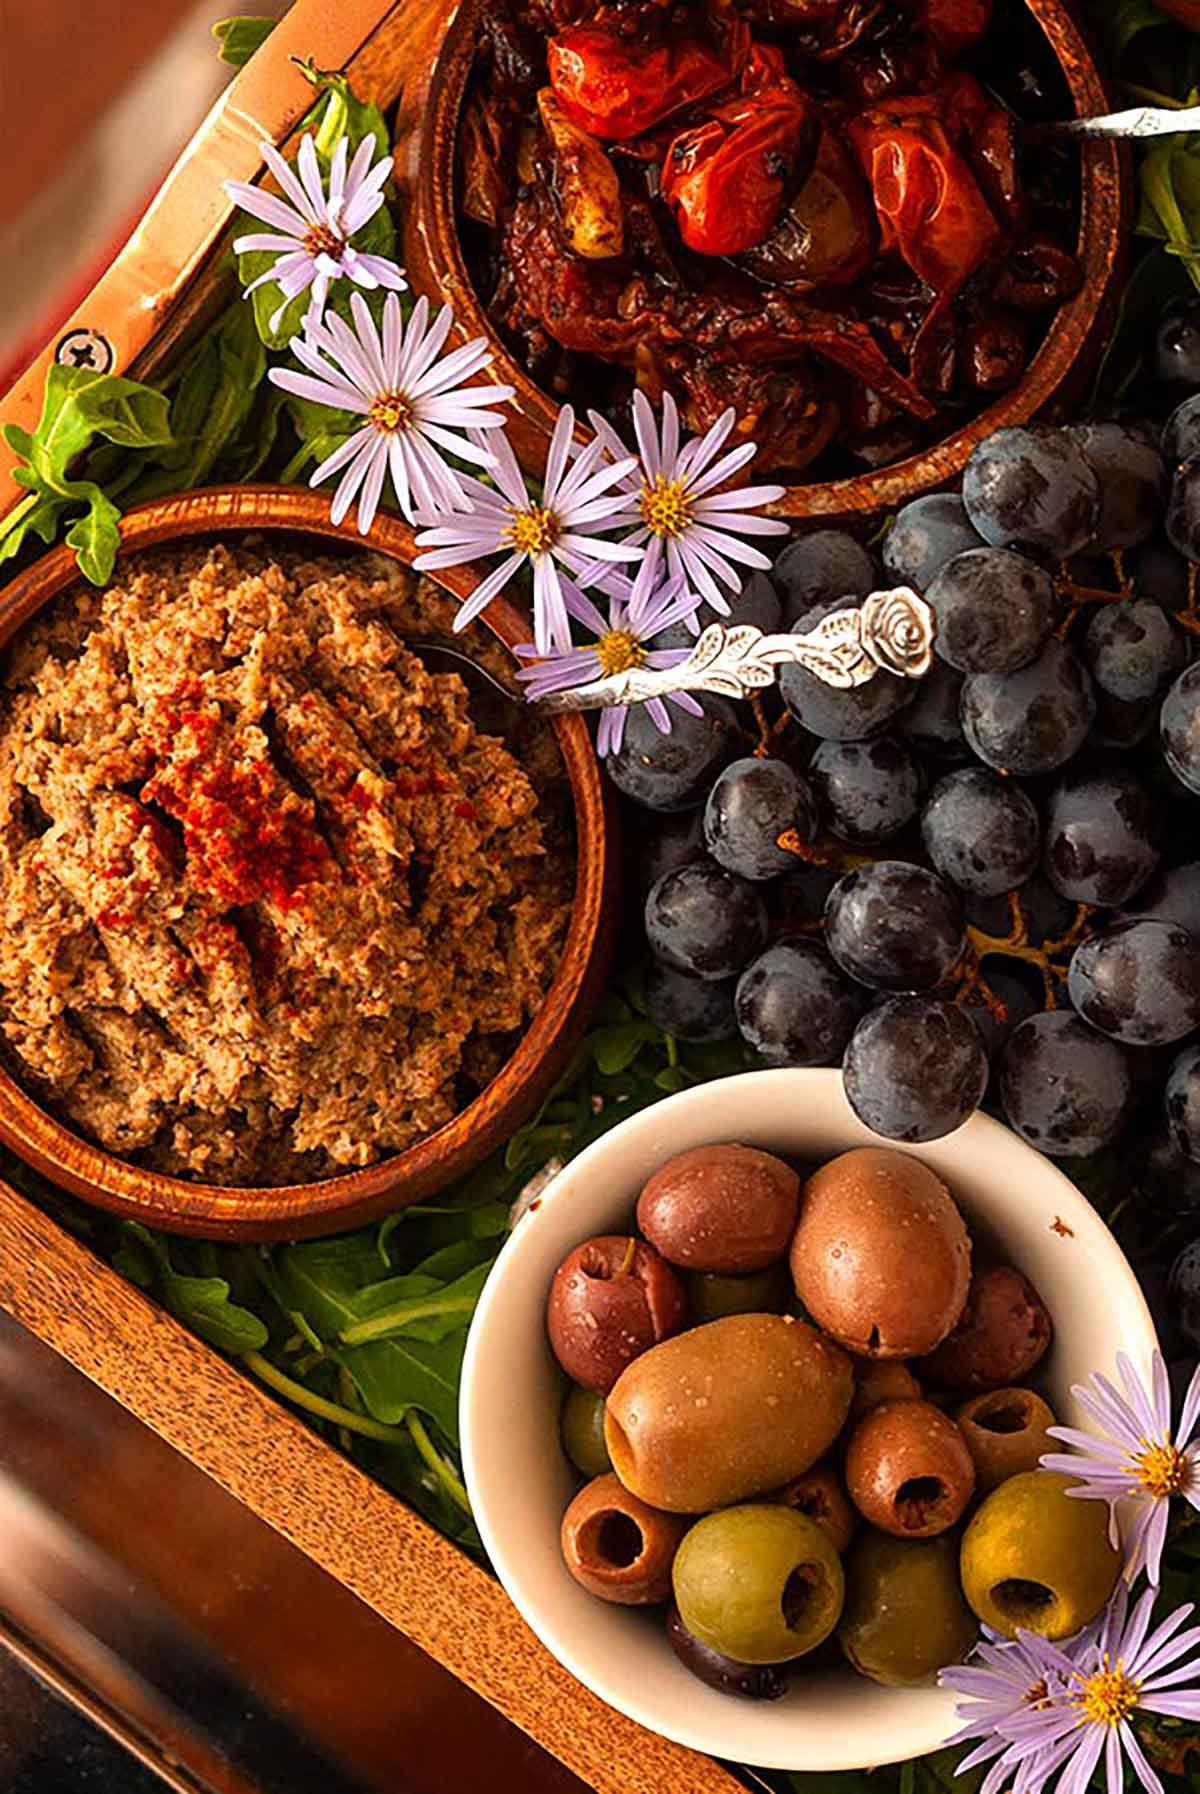 Bowls of bruschetta, pate and olives surrounded by grapes, arugula and flowers in a tray.